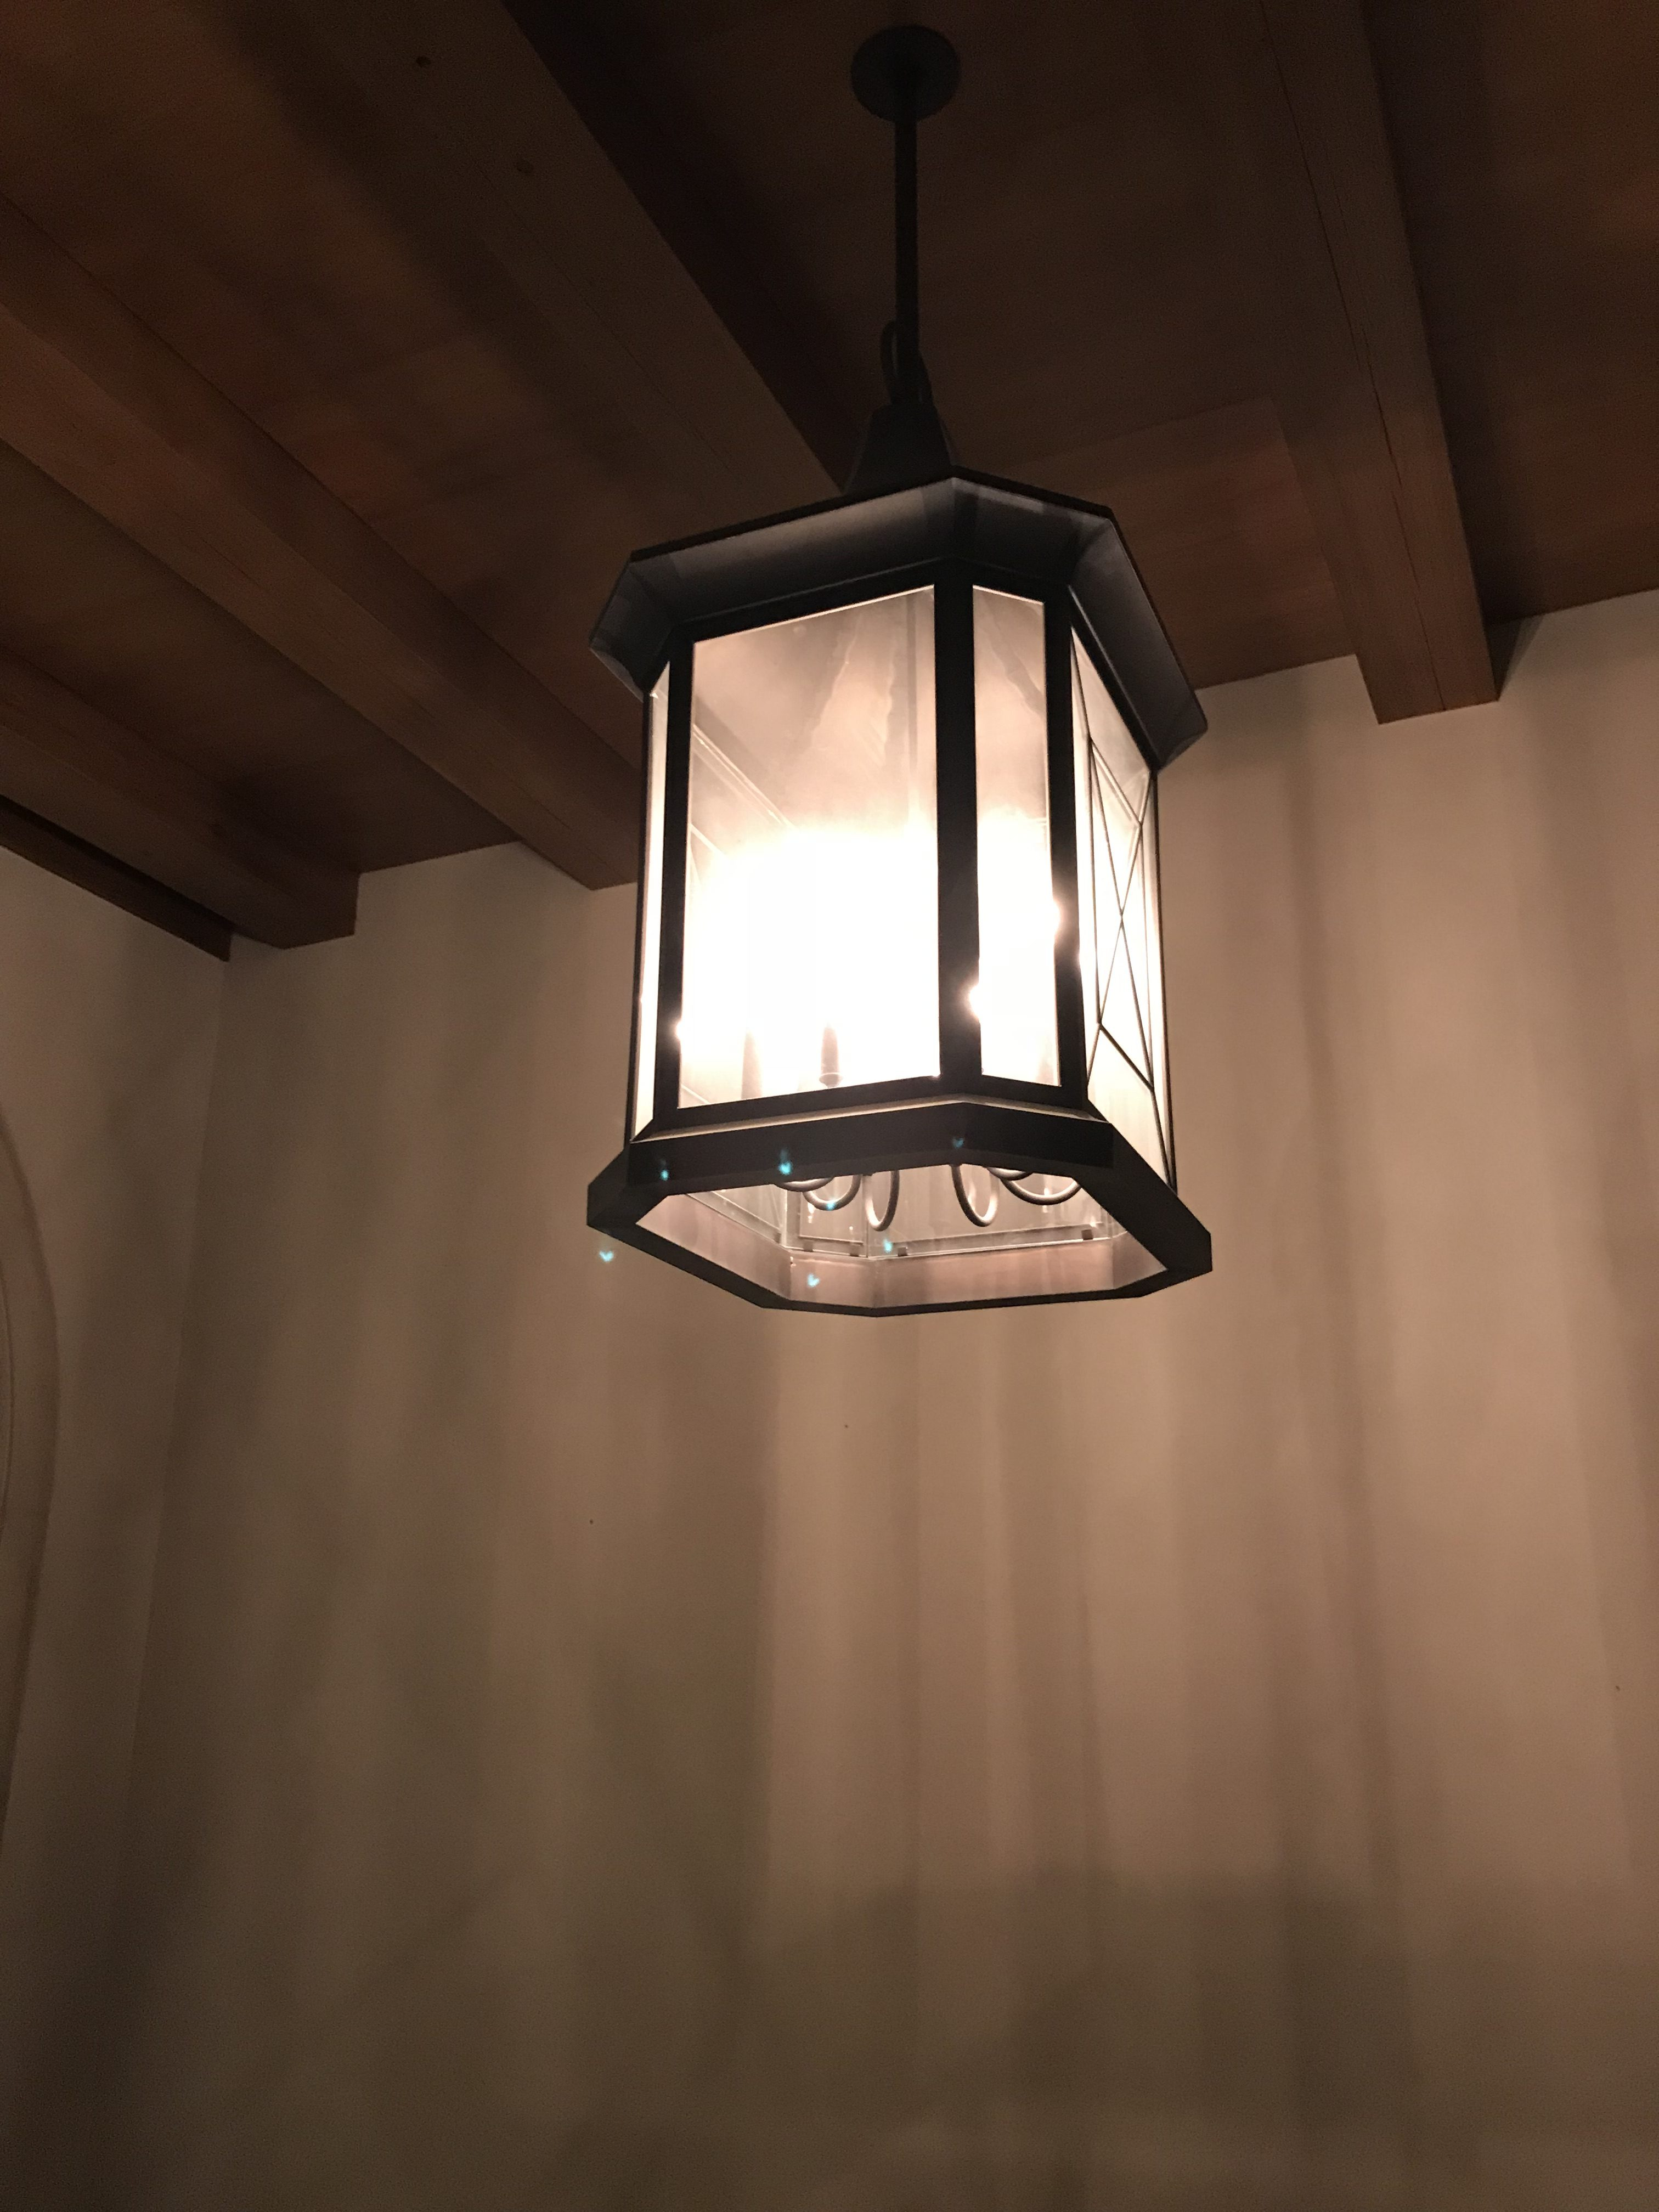 Sea Island Lighting, Design Lighting Group, Design Lighting Group LLC, Lighting, Decorative Fixtures, Decorative Hardware, Track Lighting, Recessed Lighting, Outdoor Lighting, Led Lighting, Motorized Shades, Ceiling Fans